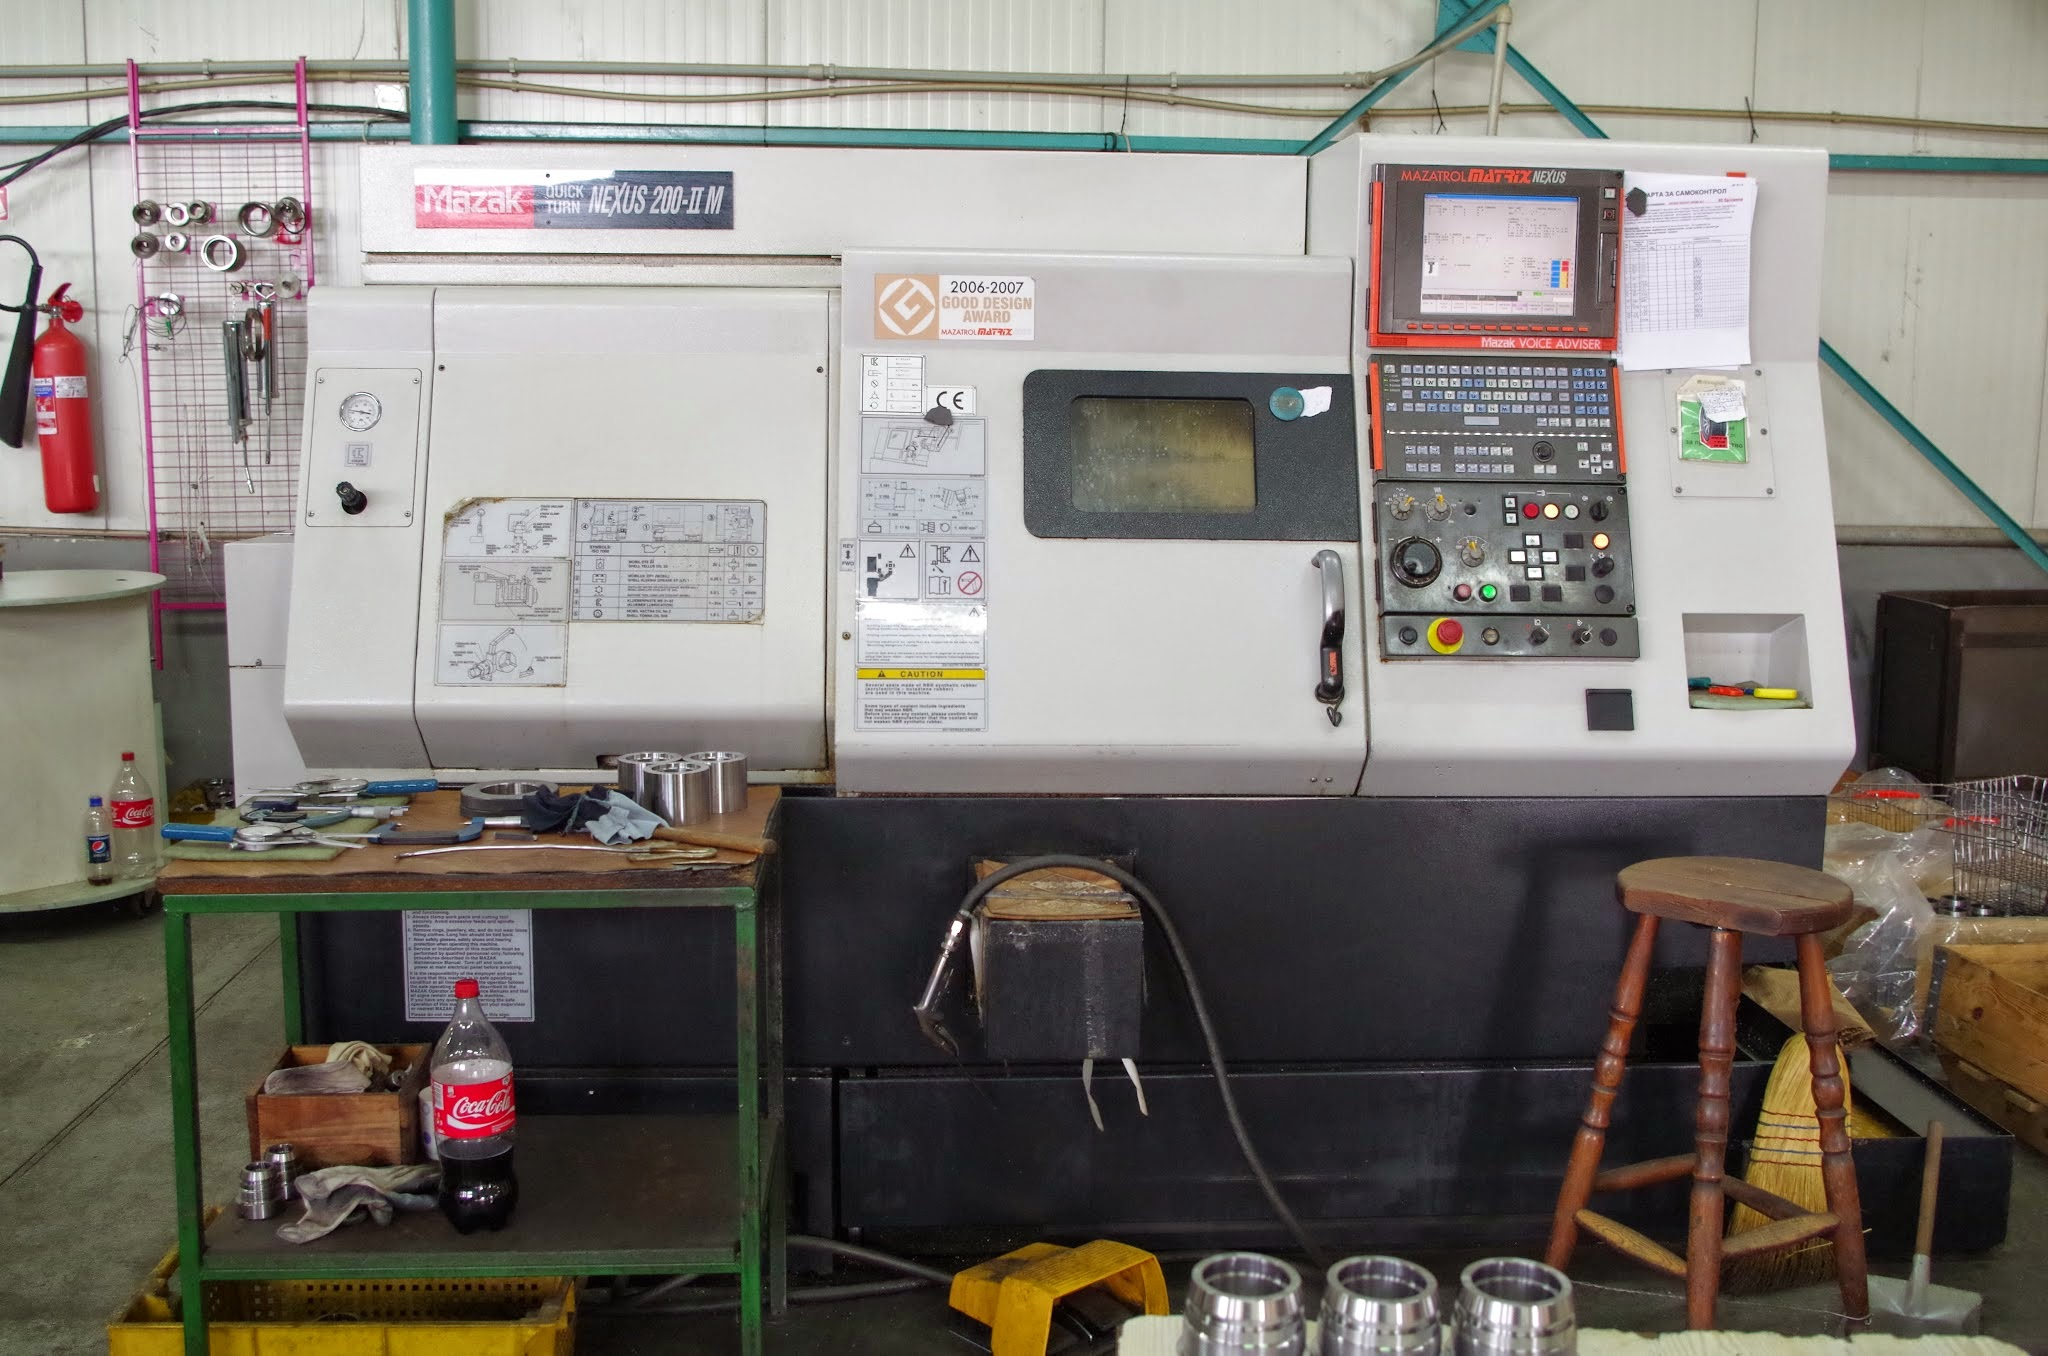 MAZAK QUICK TURN NEXUS 200IIM